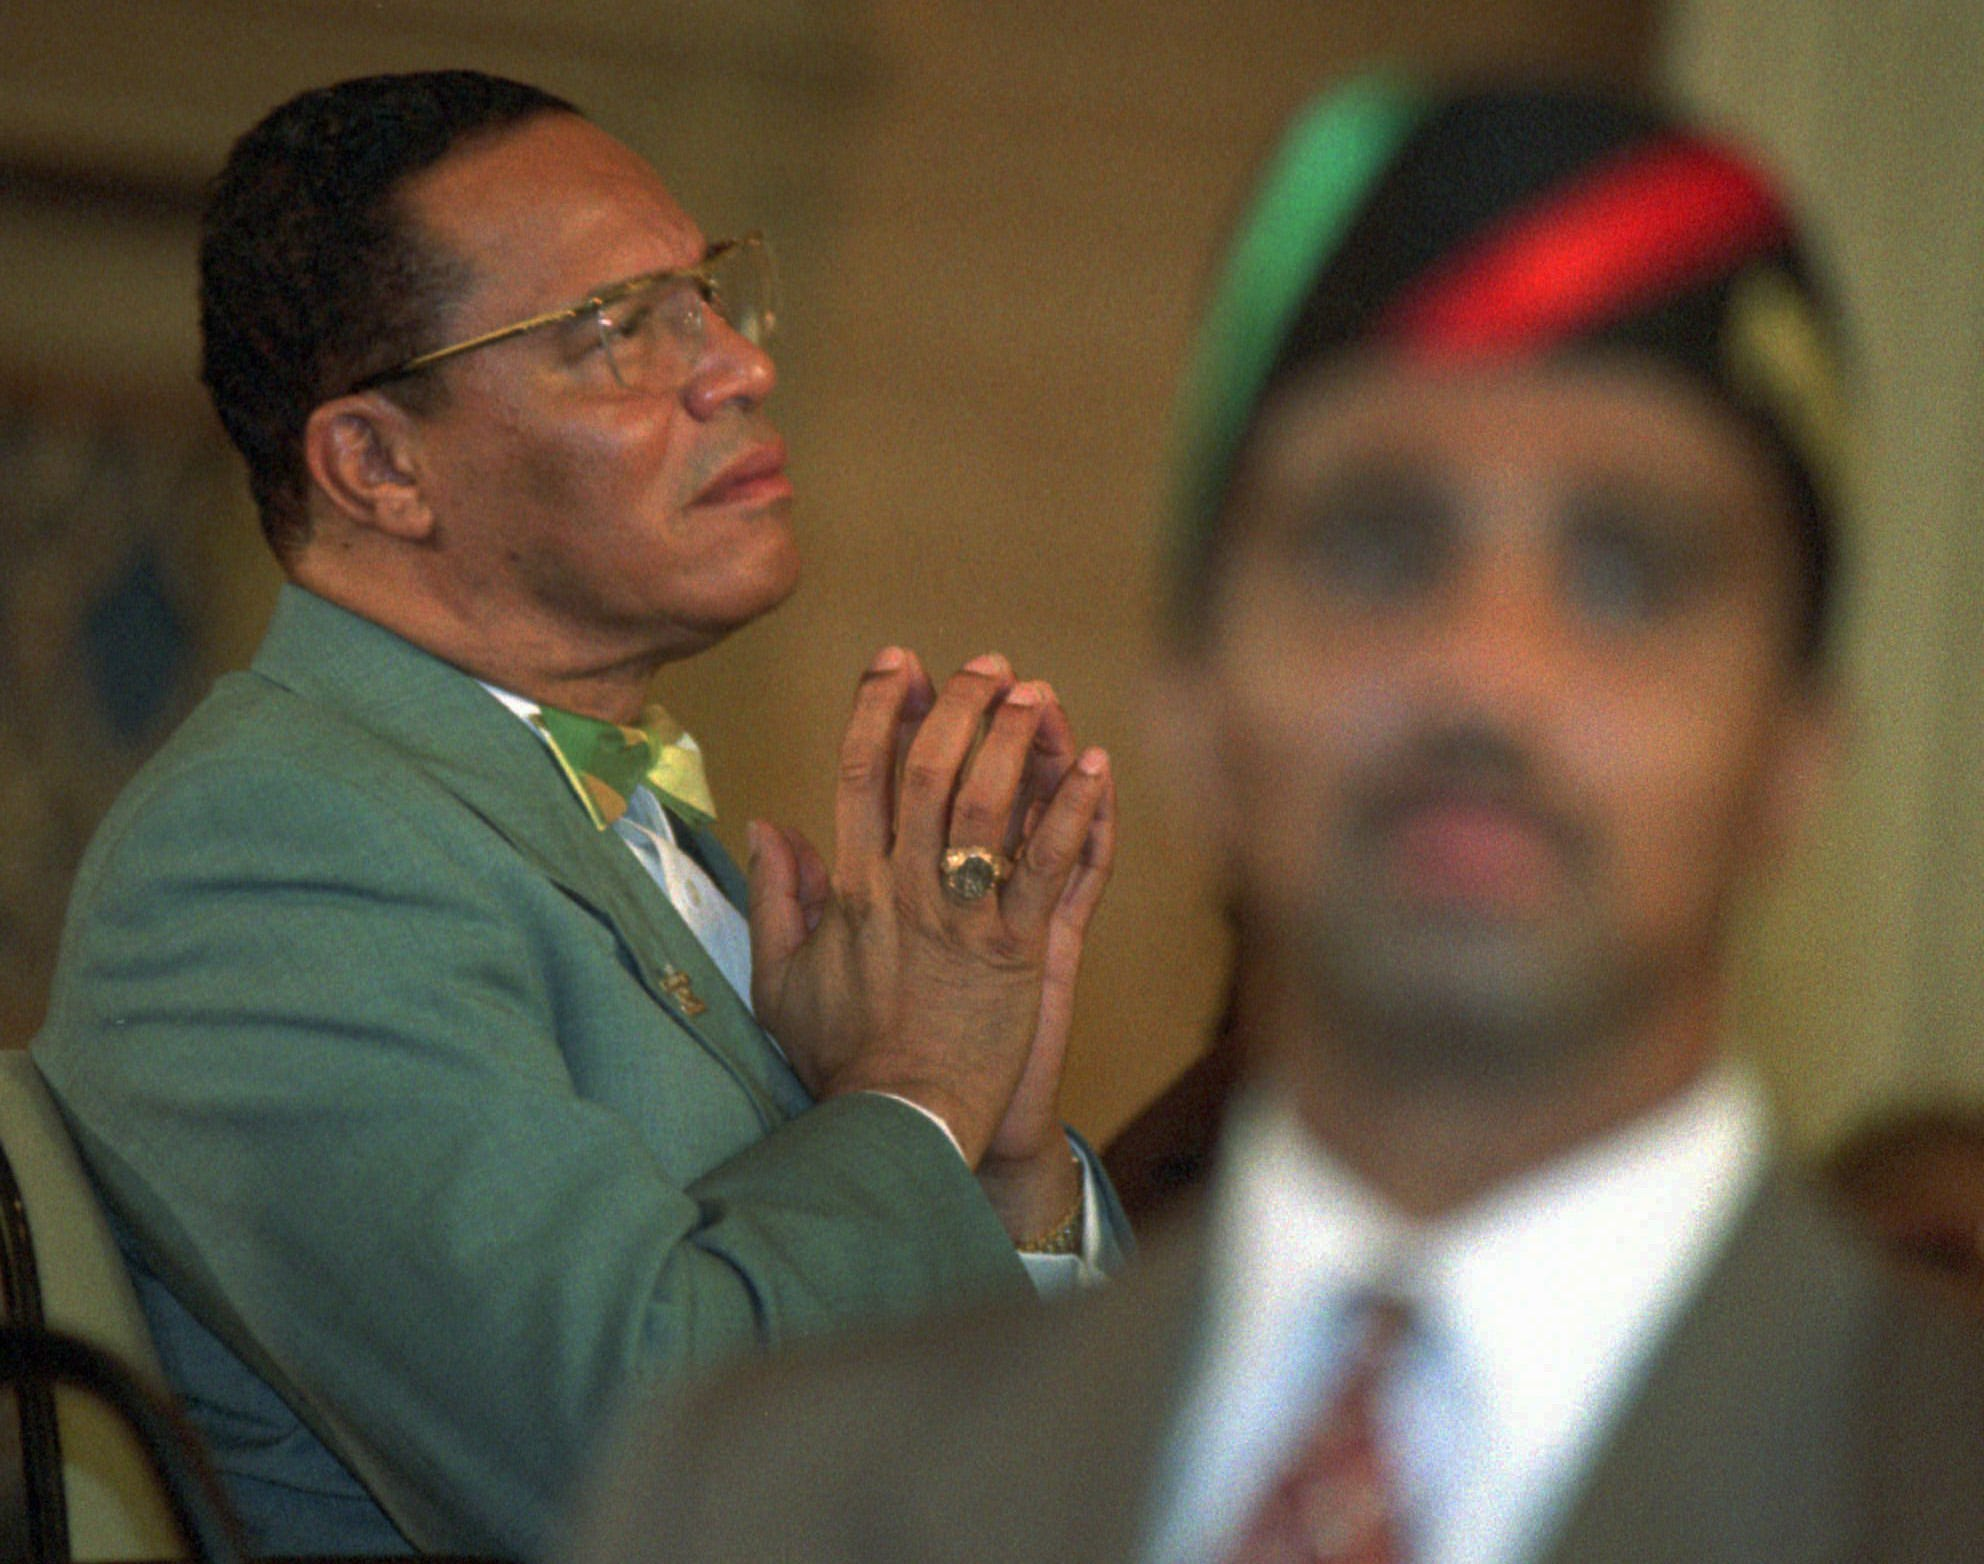 Nation of Islam leader Louis Farrakhan has a quiet moment during a rally at Operation PUSH headuarters in Chicago on Oct. 14, 1995, two days before the Million Man March he organized in Washington, D.C. One of his bodyguards is in the foreground.